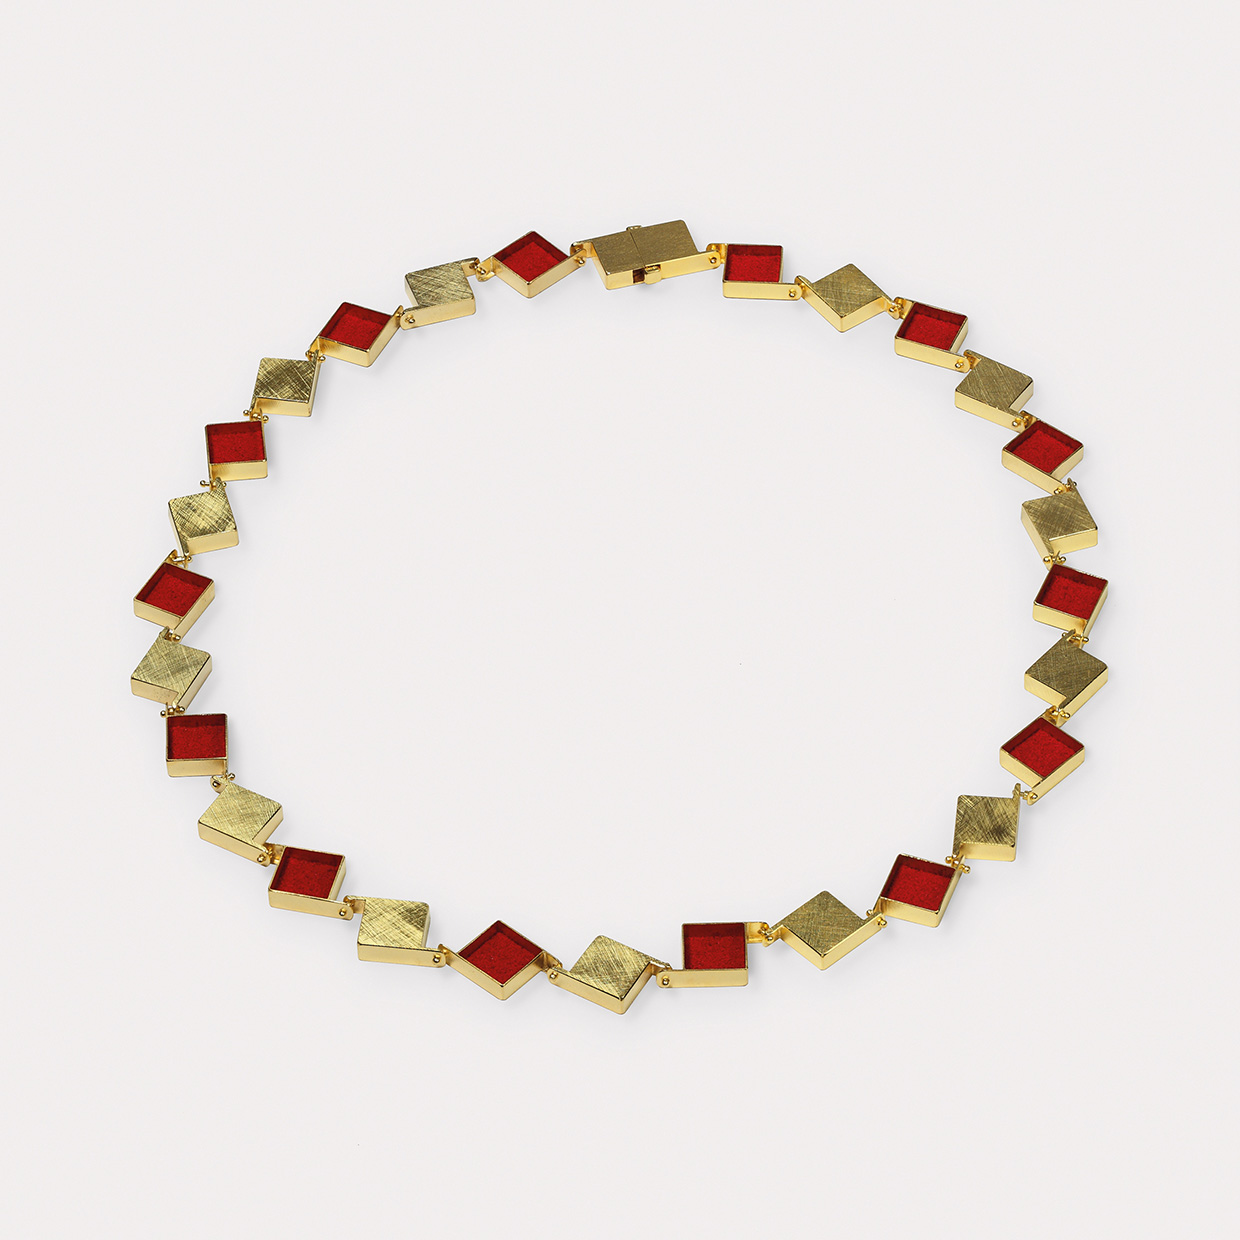 necklace  2015  gold  750  red  pigment  510x10x4  mm